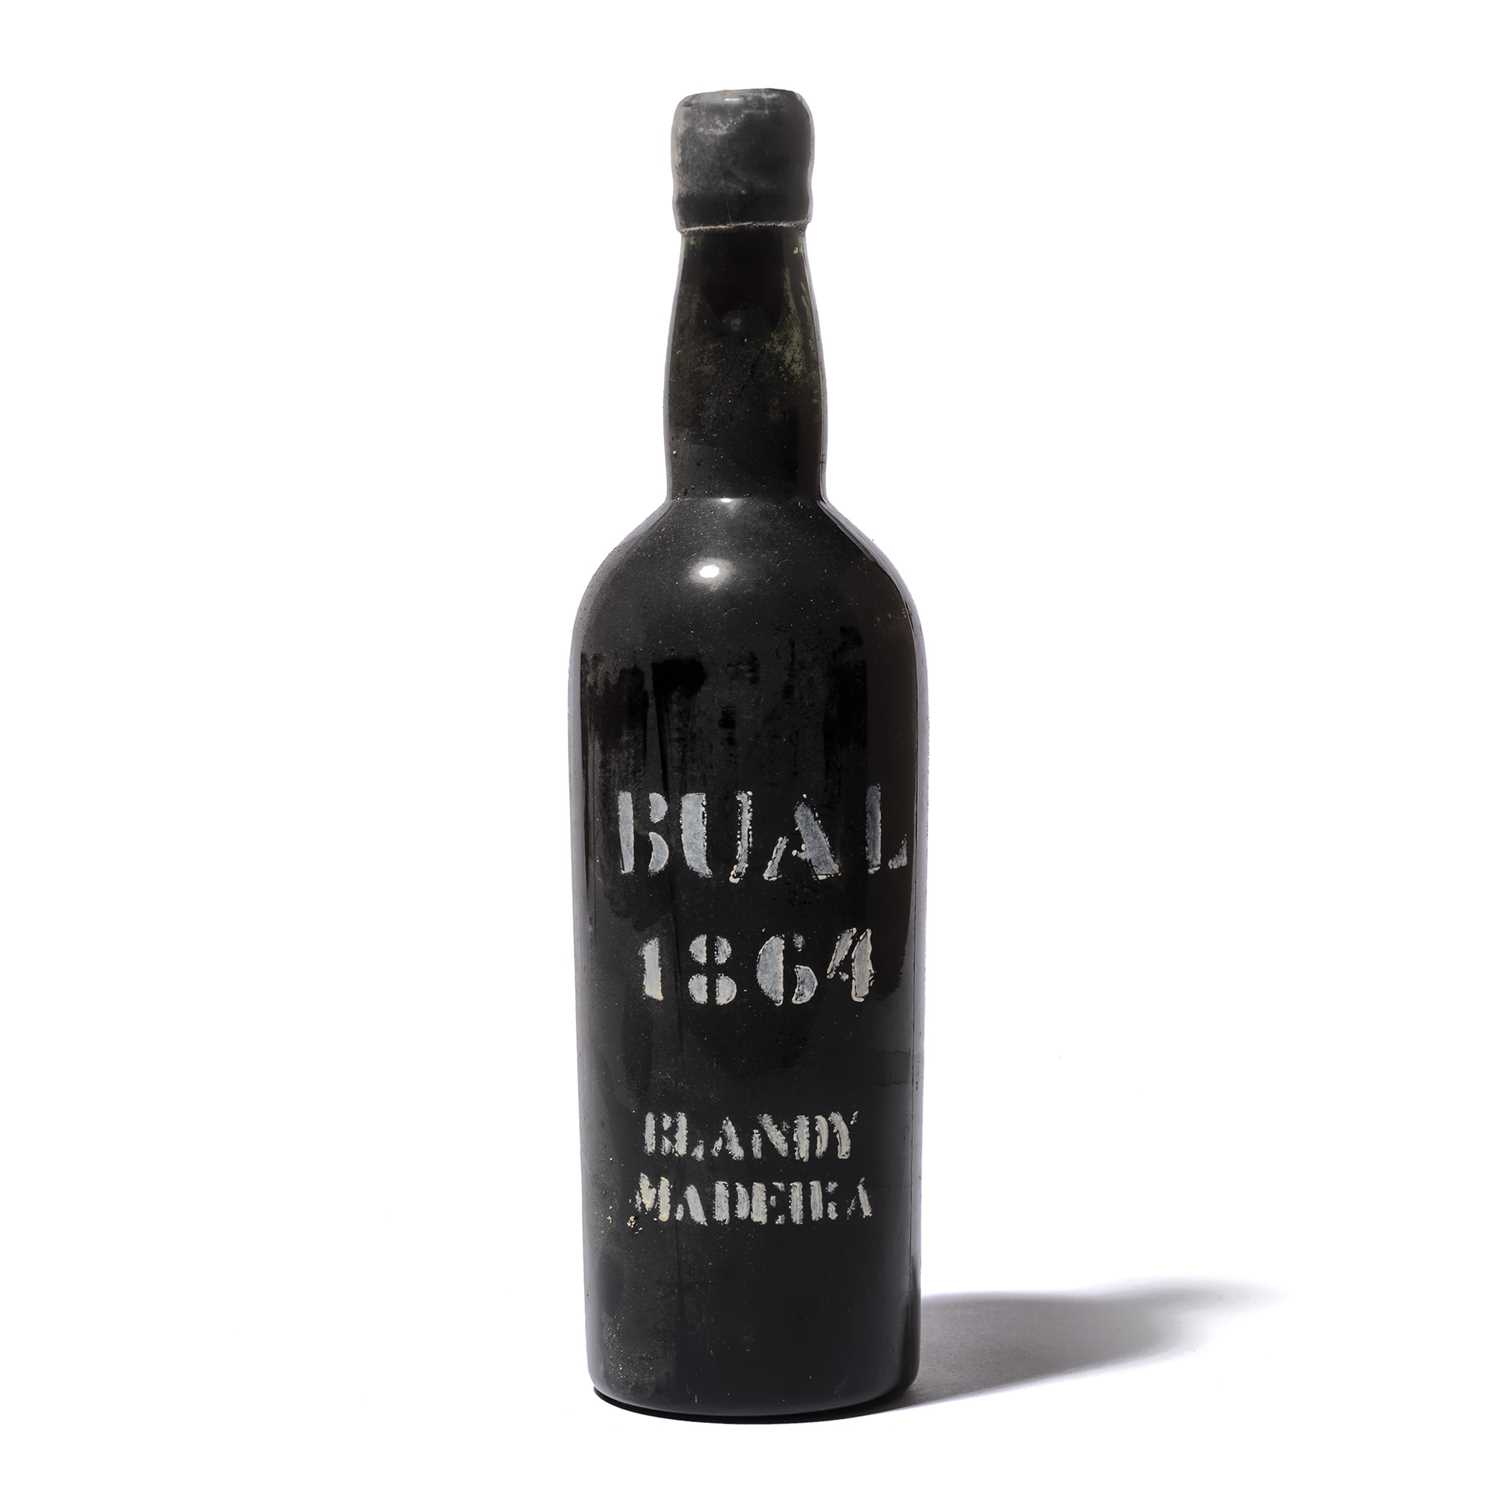 Lot 26-1 bottle 1864 Bual